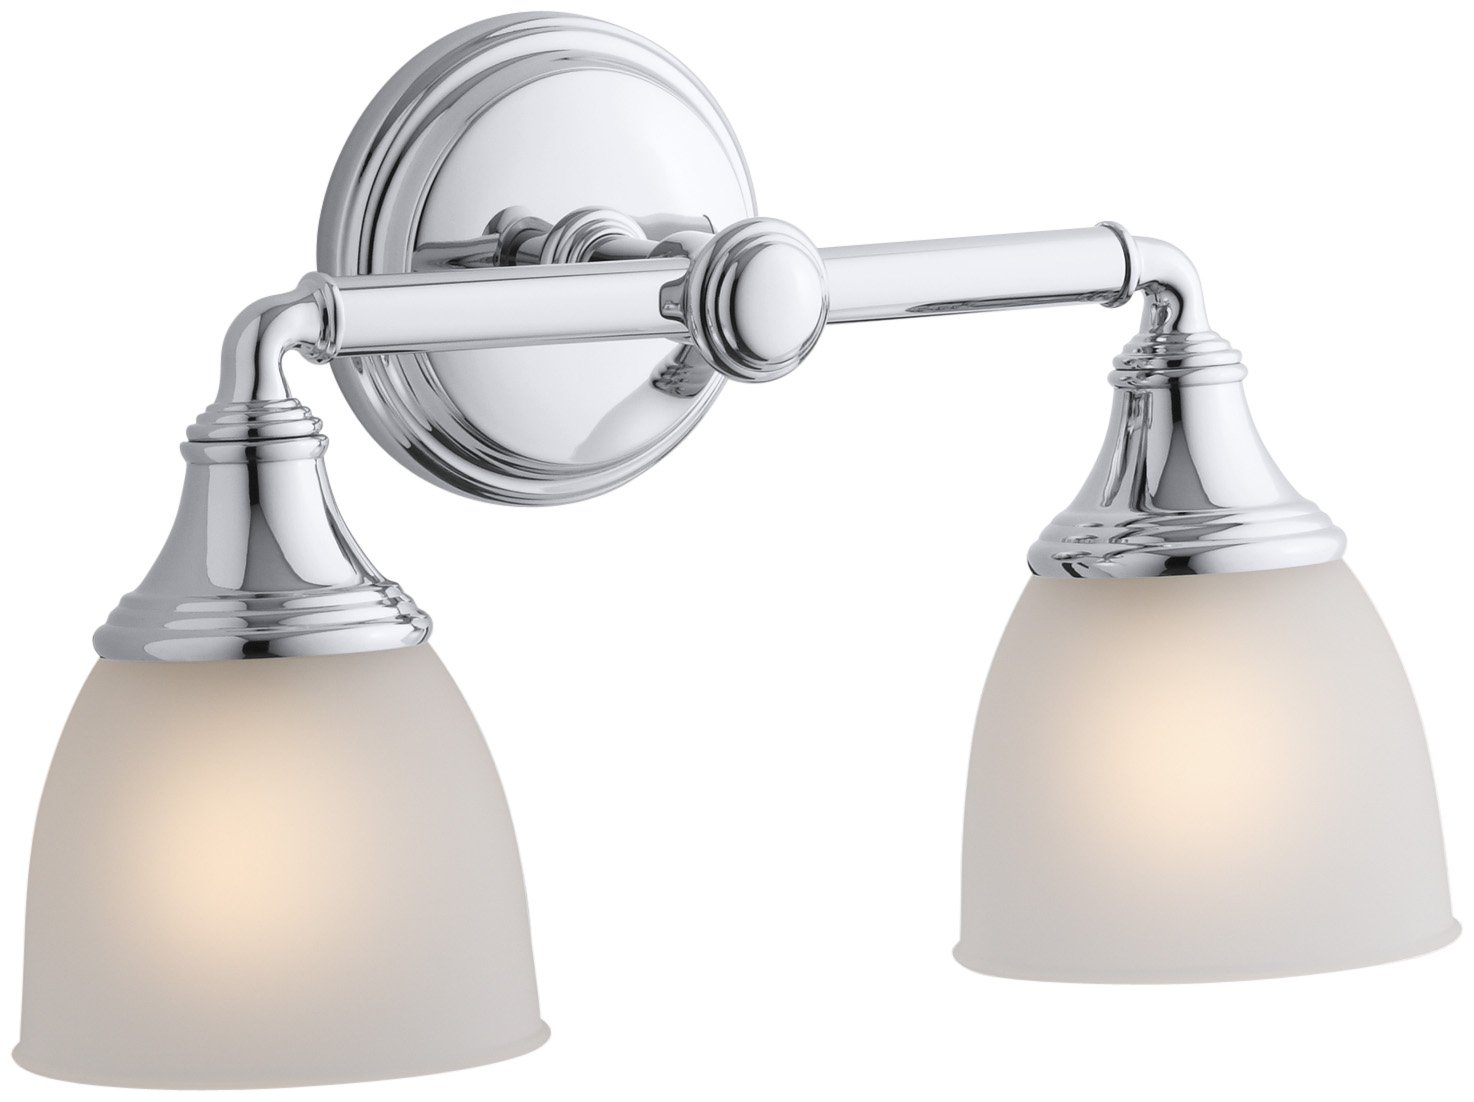 bathroom single chrome thompson sconce light vanity